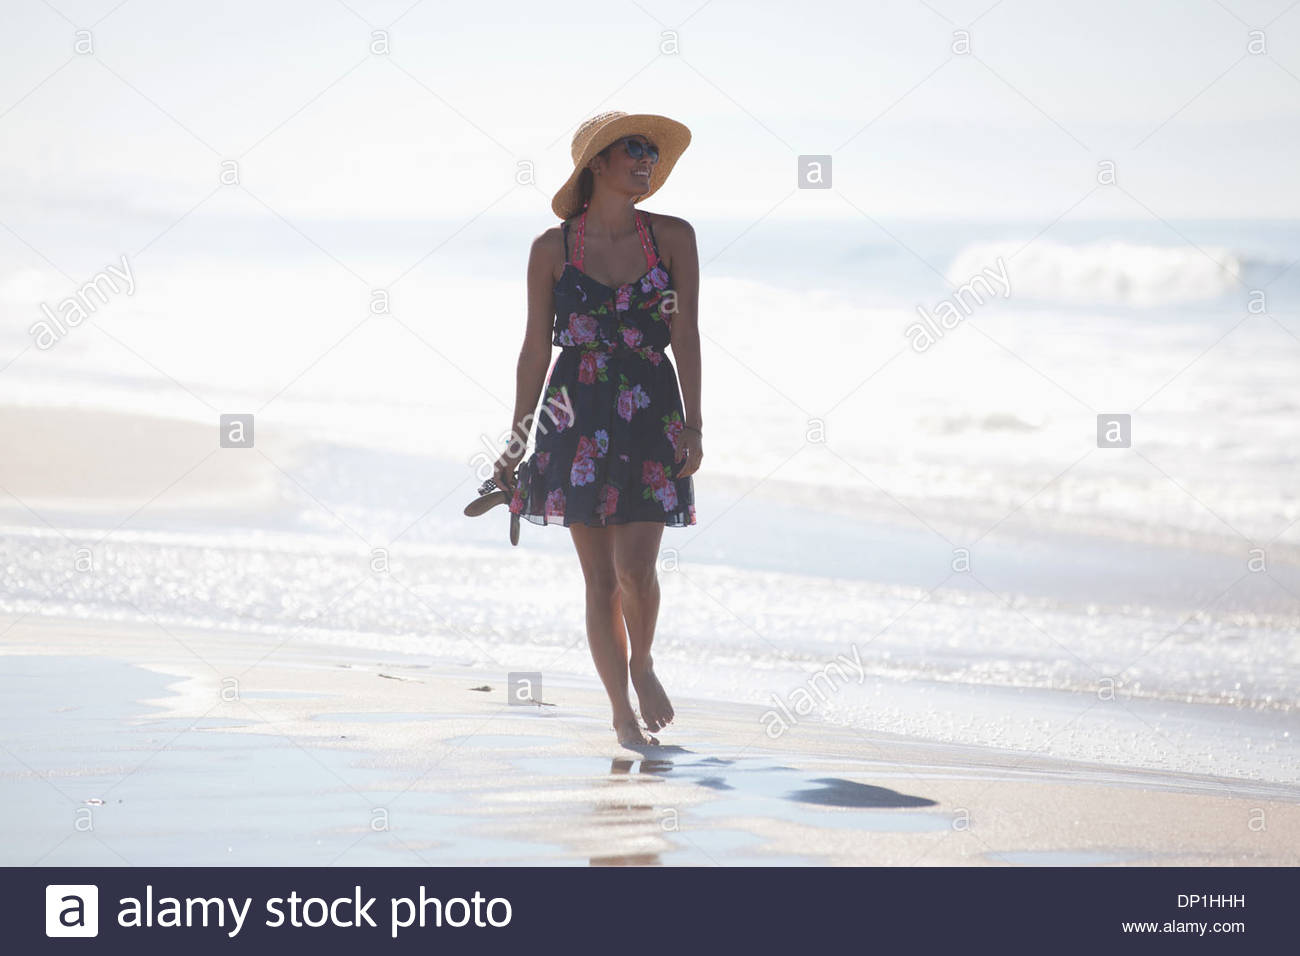 Woman carrying sandals on beach - Stock Image